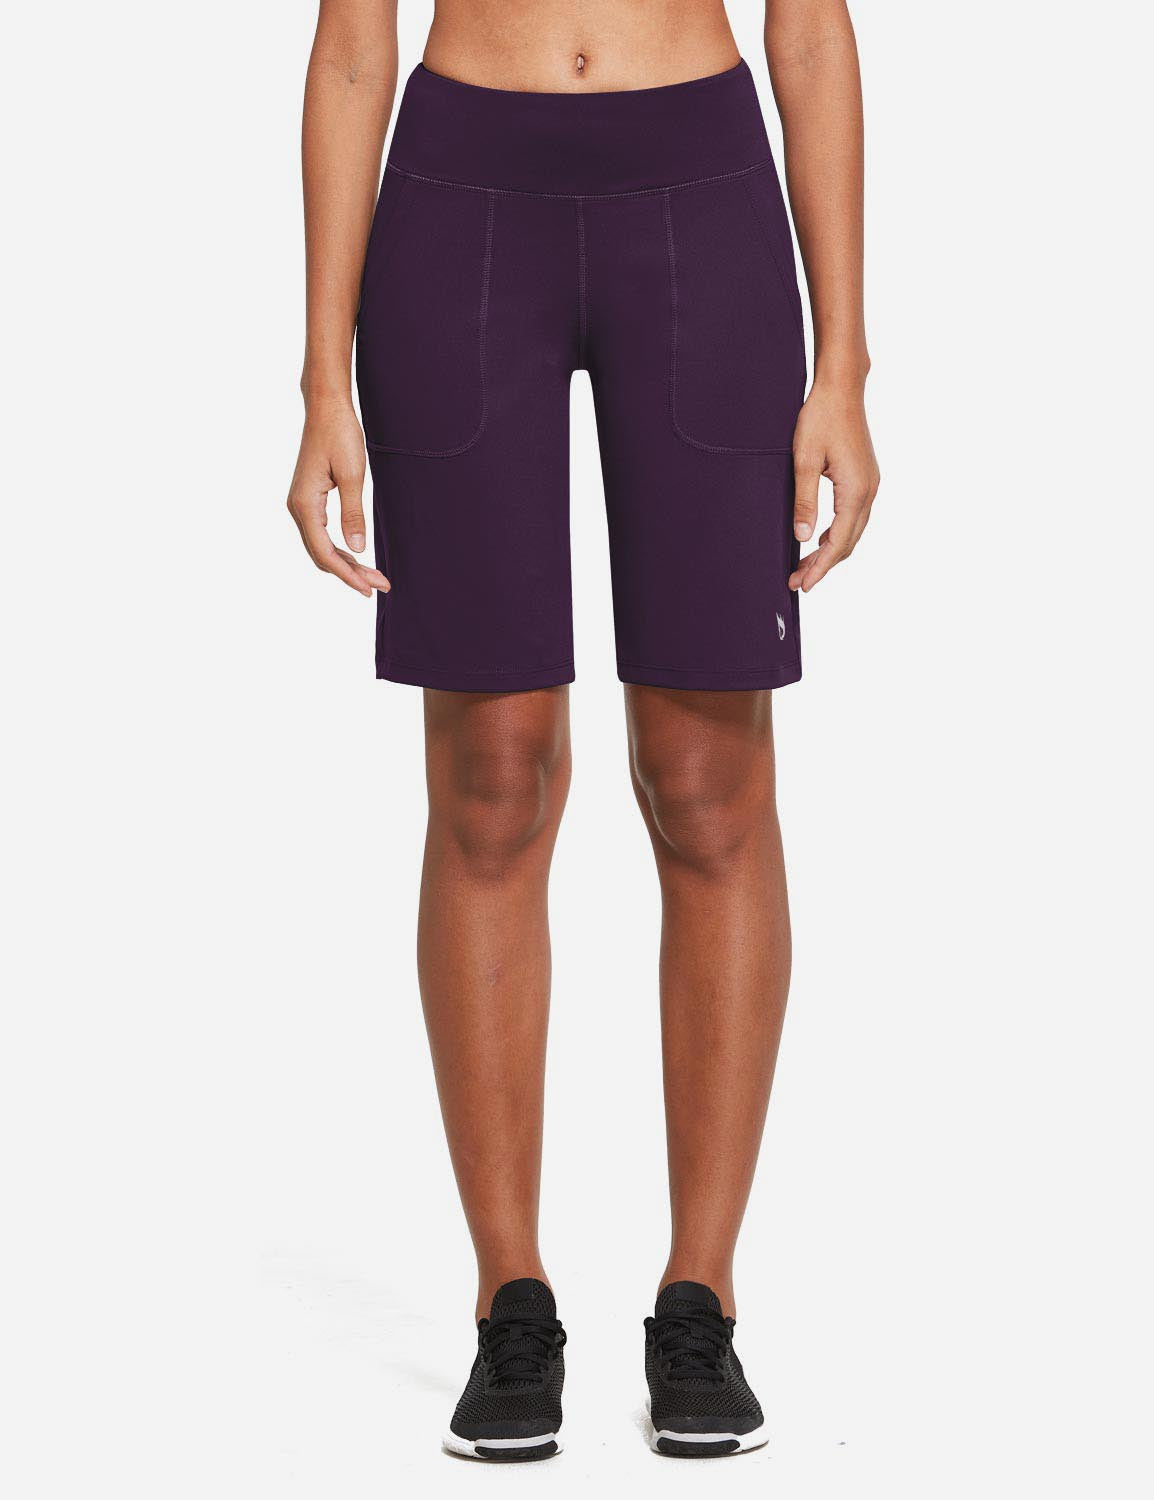 Baleaf Womens Mid Rise Tummy Control Pocketed Lounge Bermuda Shorts Purple front